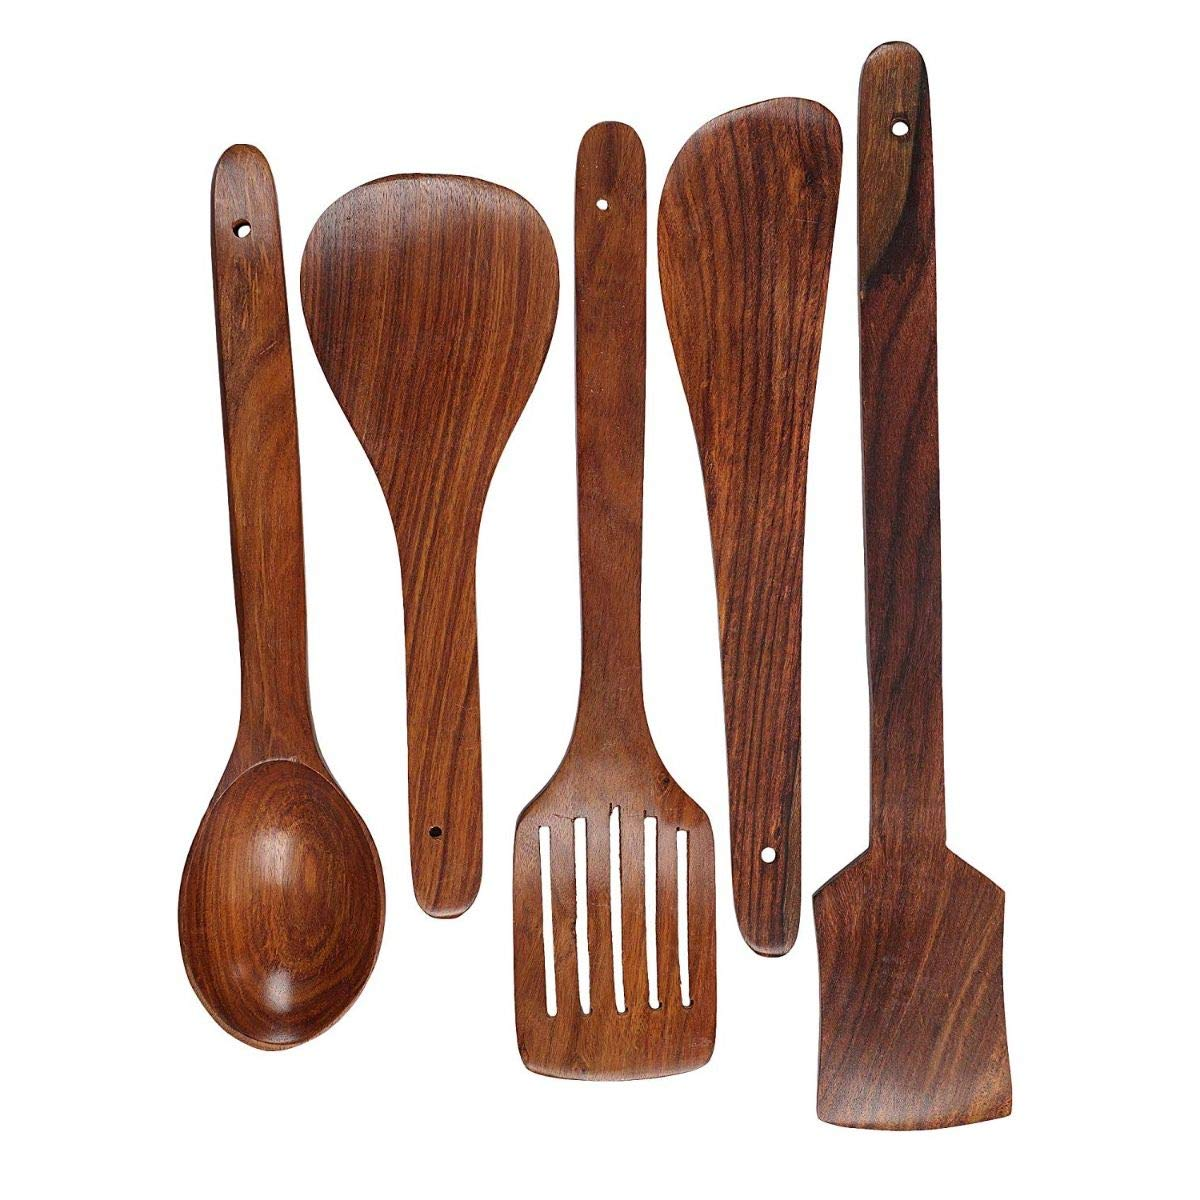 Bekhi Sheesham wood Non-Stick Serving and Cooking Spoon Spatulla Kitchen Tools Utensil, Set of 5